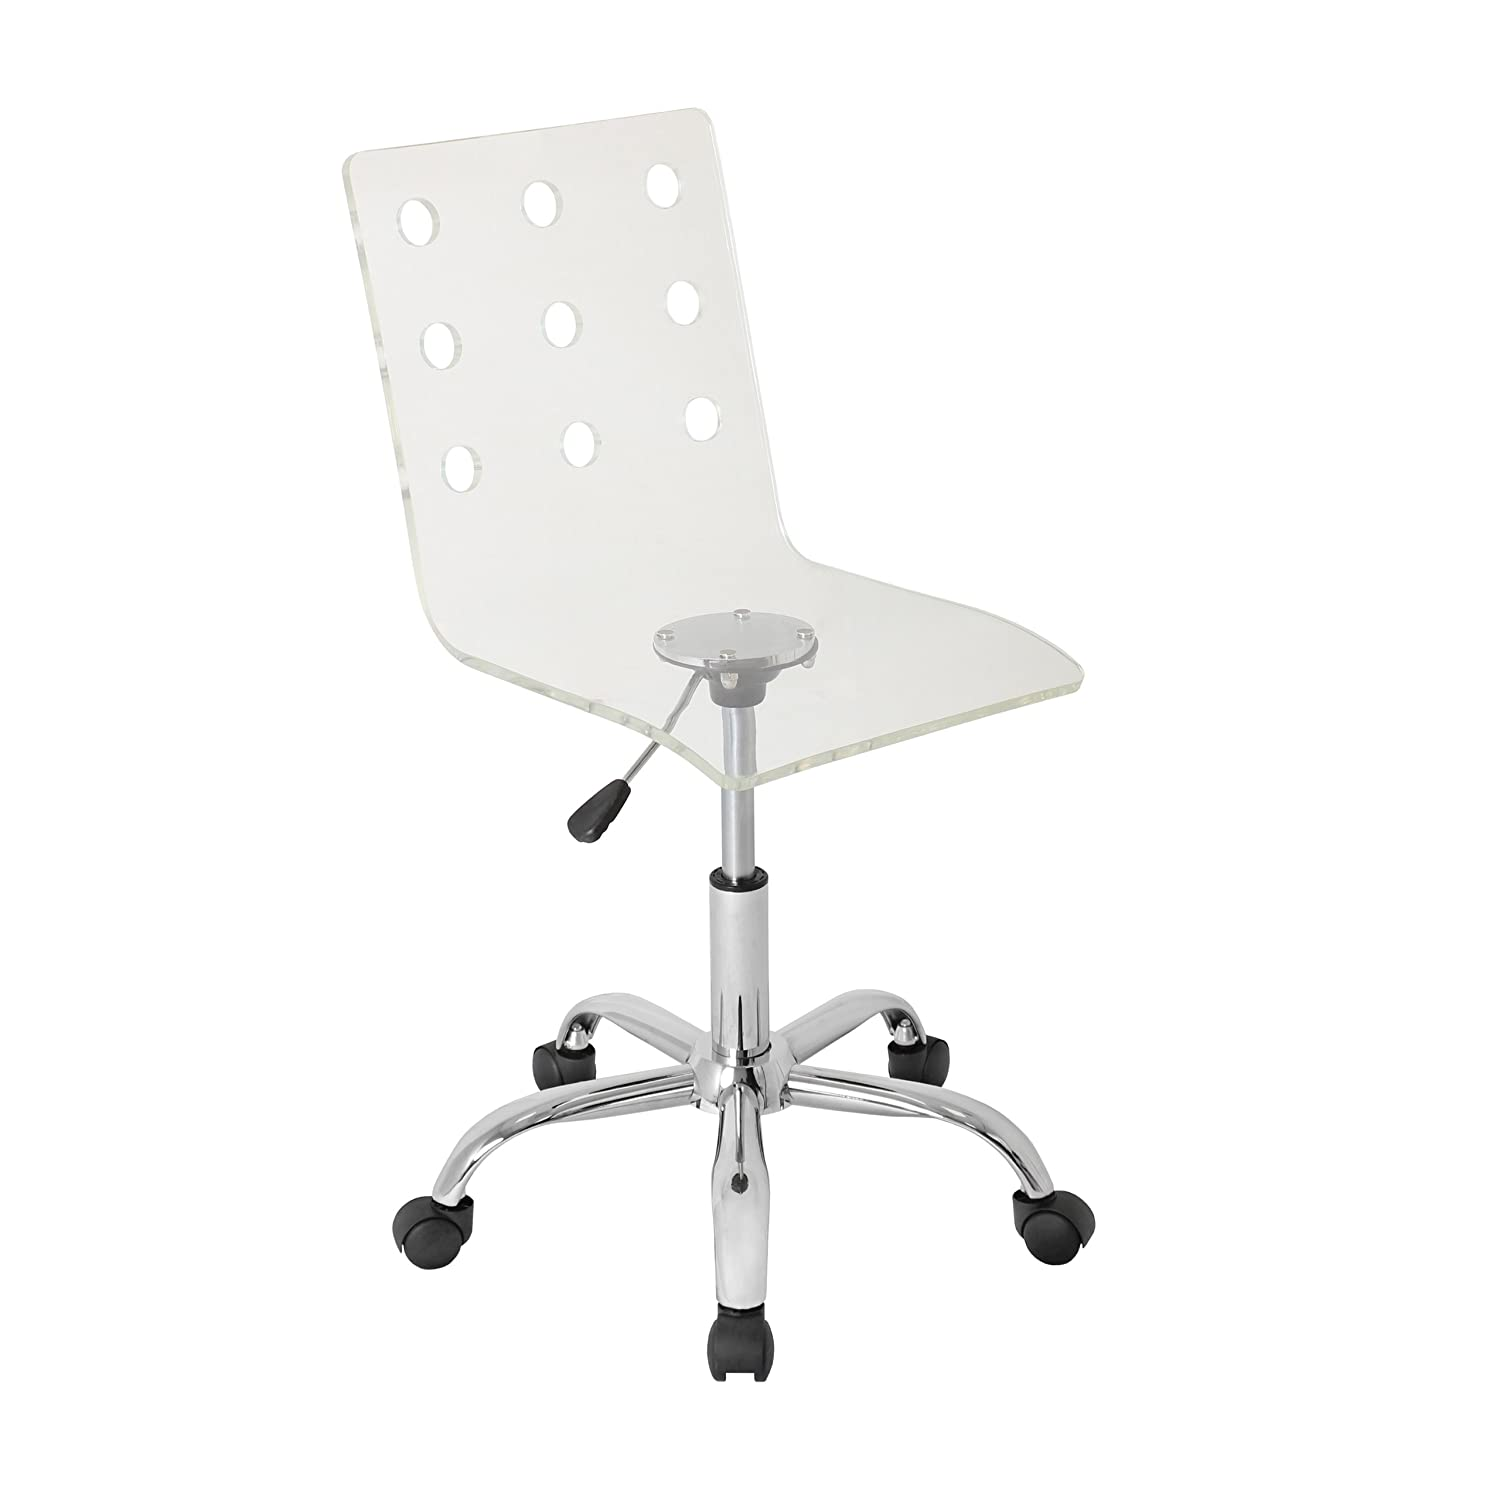 Swiss Clear Acrylic fice Chair Amazon fice Products